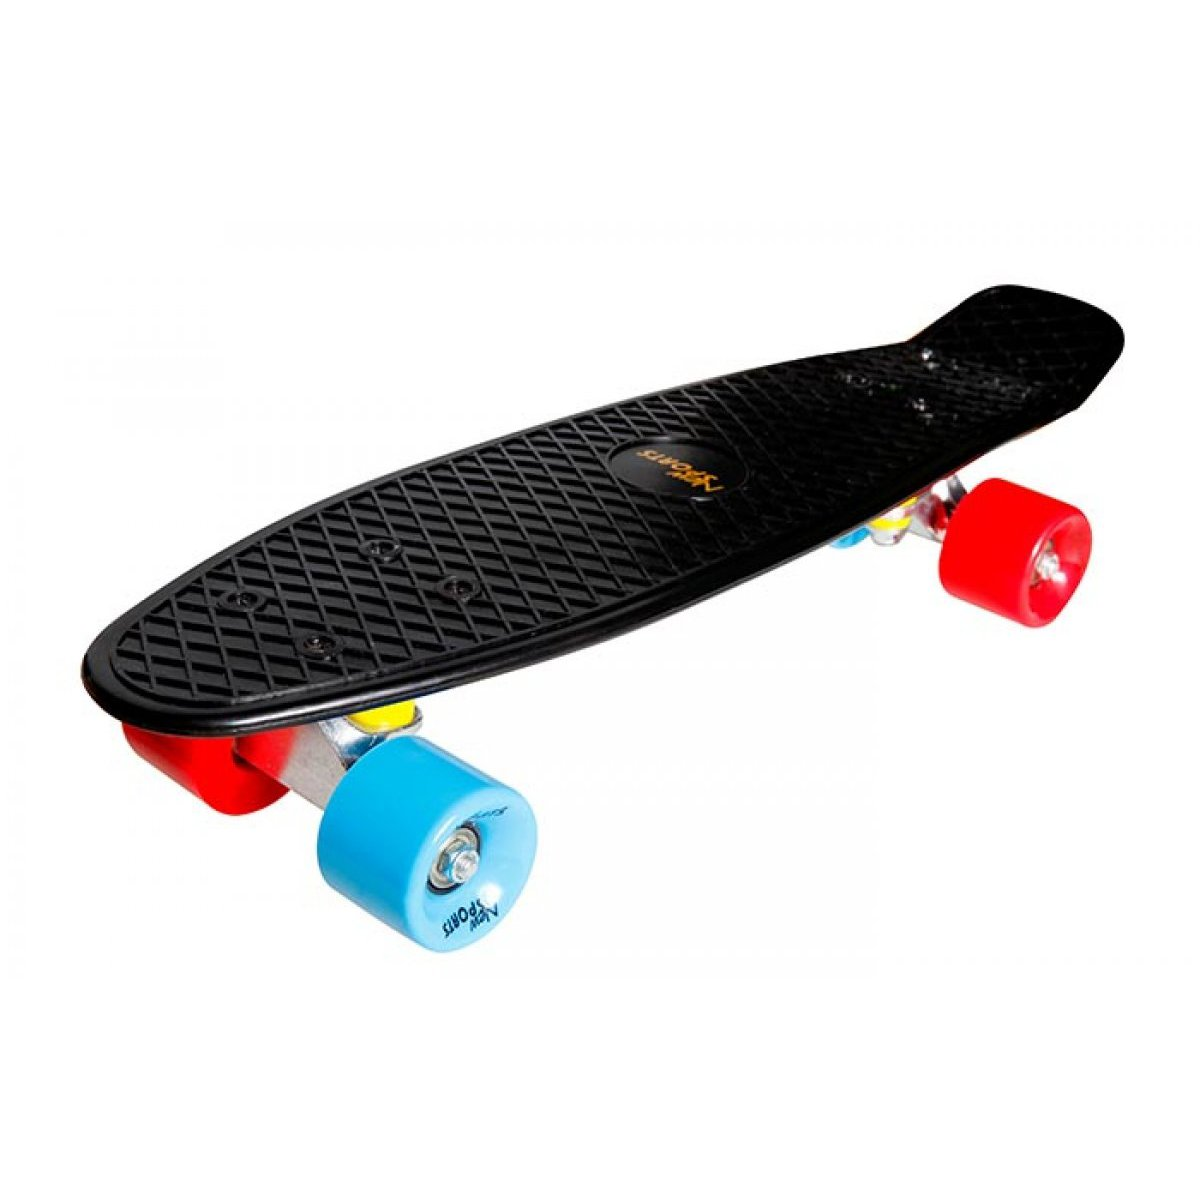 kickboard schwarz orange rot penny board abec7 skateboard. Black Bedroom Furniture Sets. Home Design Ideas